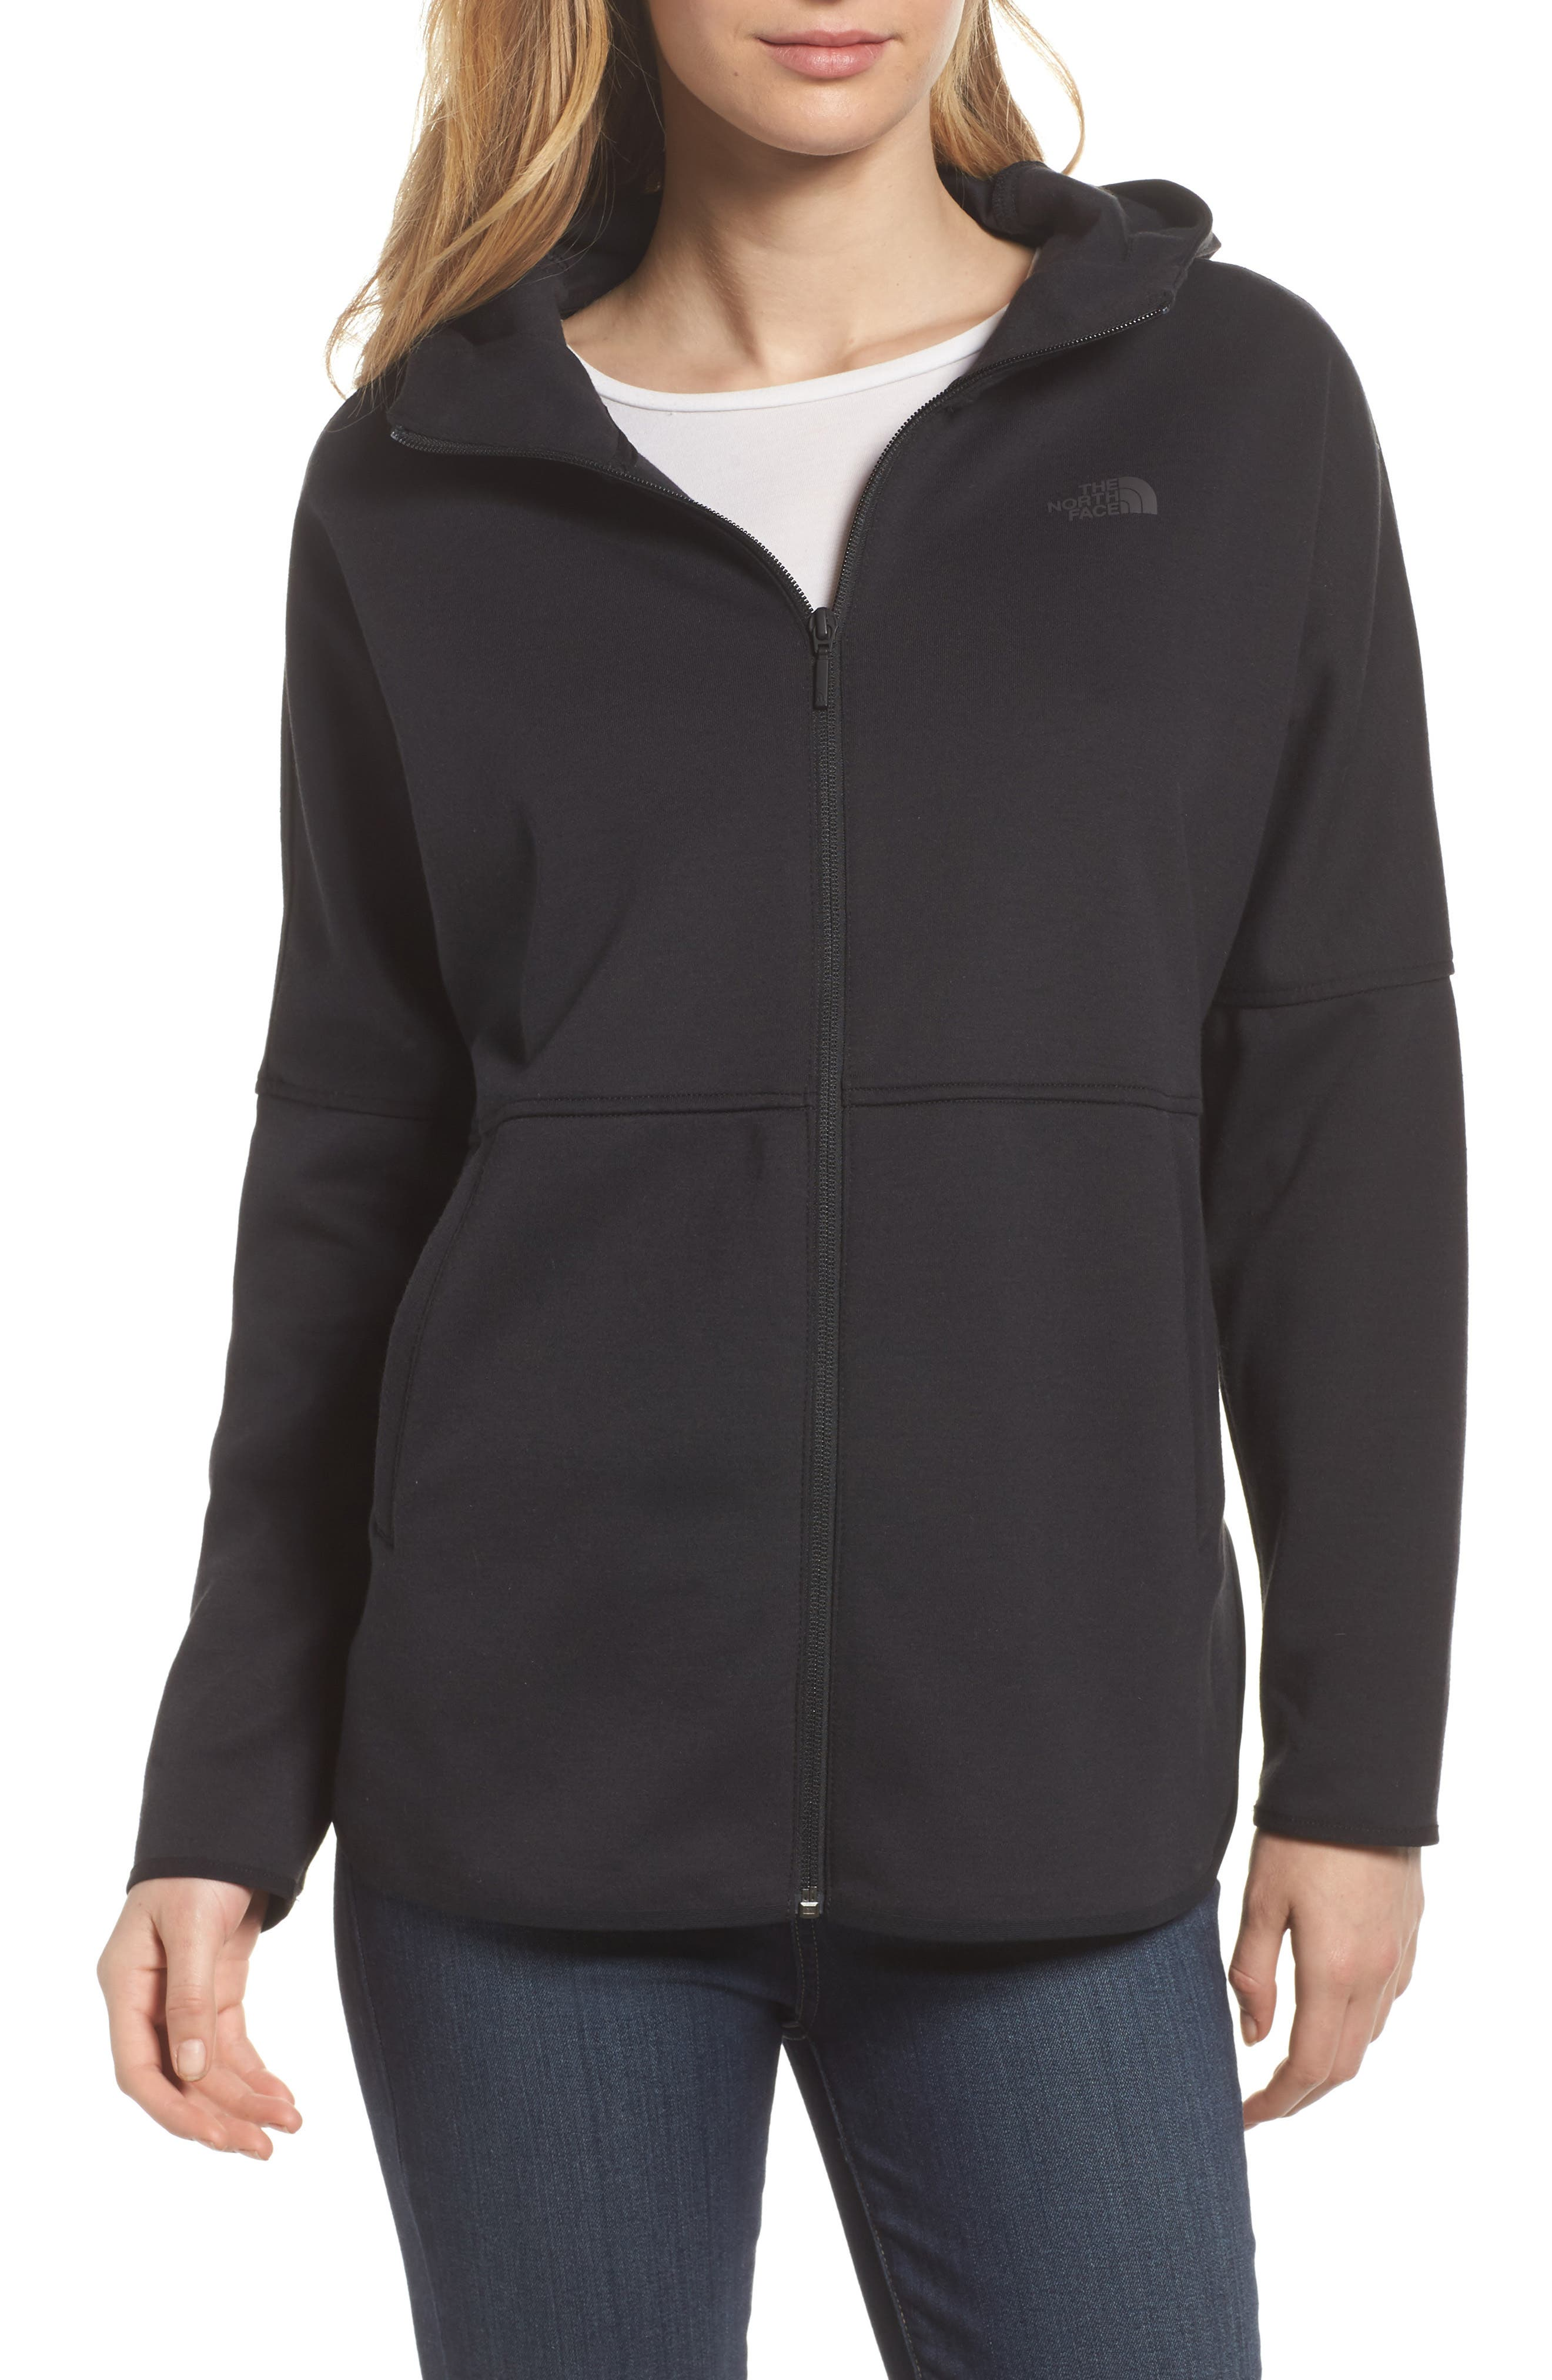 THE NORTH FACE Slacker Hooded Jacket, Main, color, 001